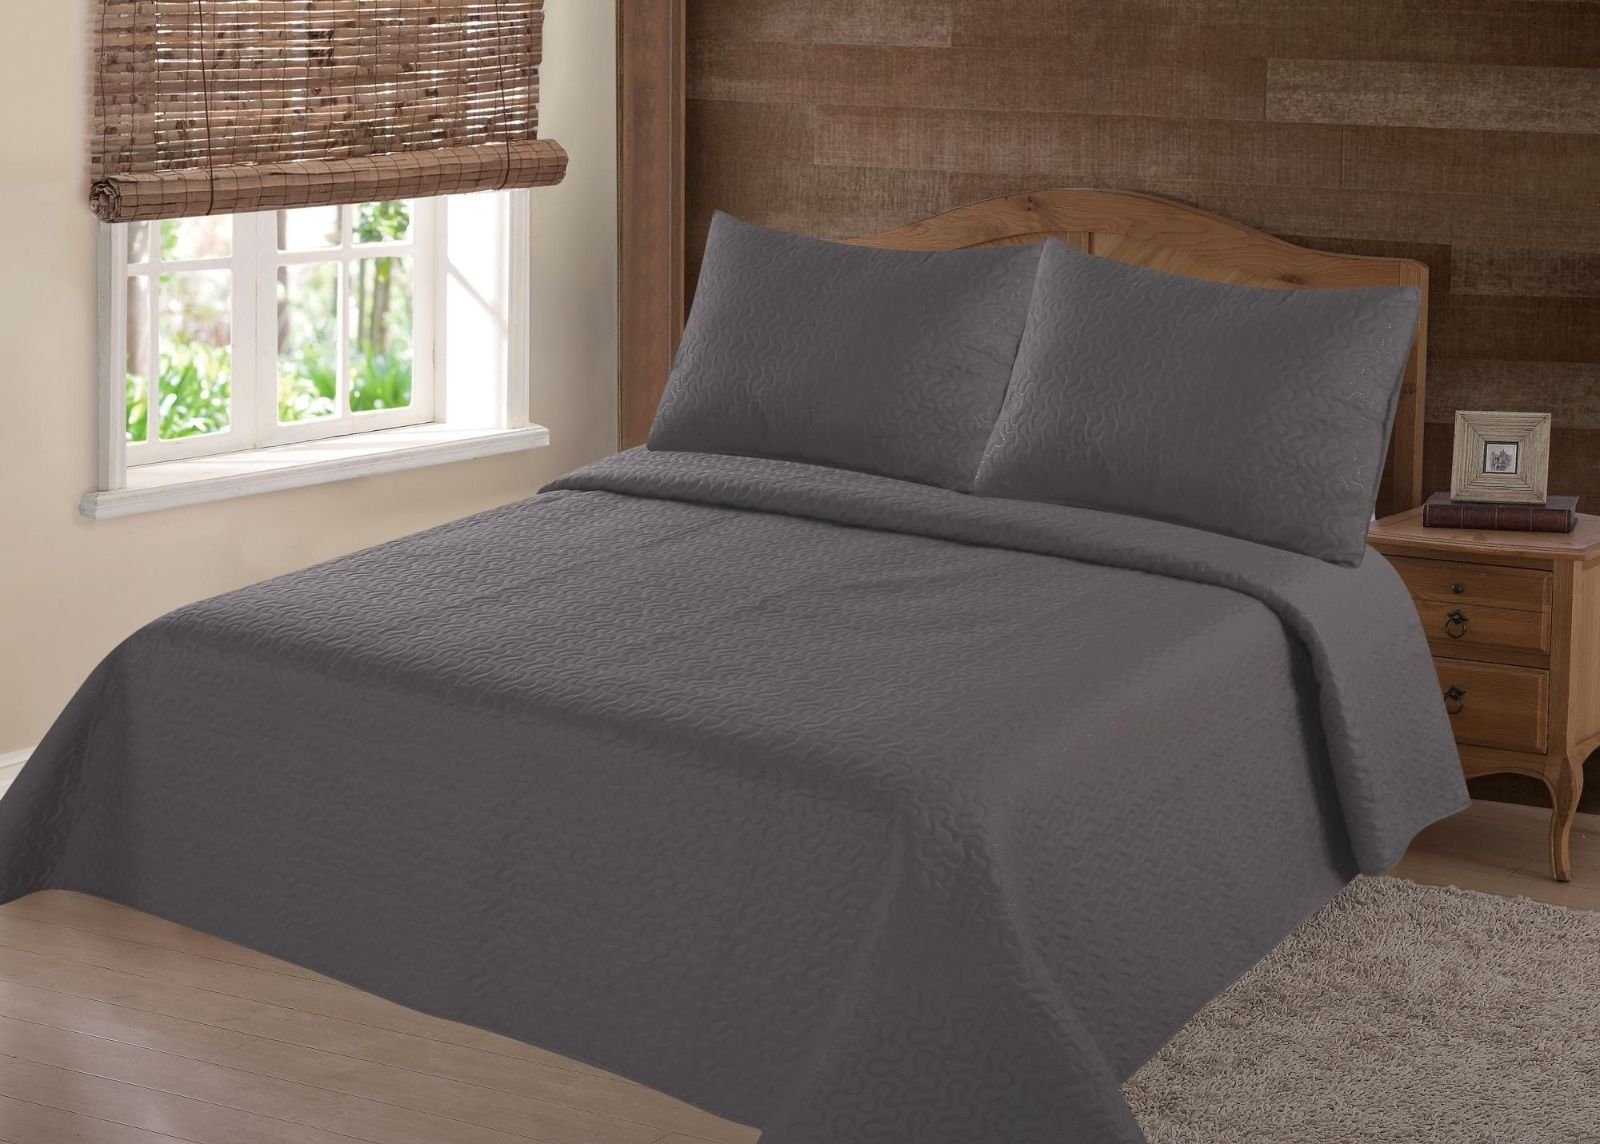 GorgeousHomeLinen (NENA) Charcoal Grey Solid Hypoallergenic Quilt Bedspread Bed Bedding Coverlets Cover Set with Pillow Cases Size inc: Twin (2pc) Full Queen King (3pc) (Queen)